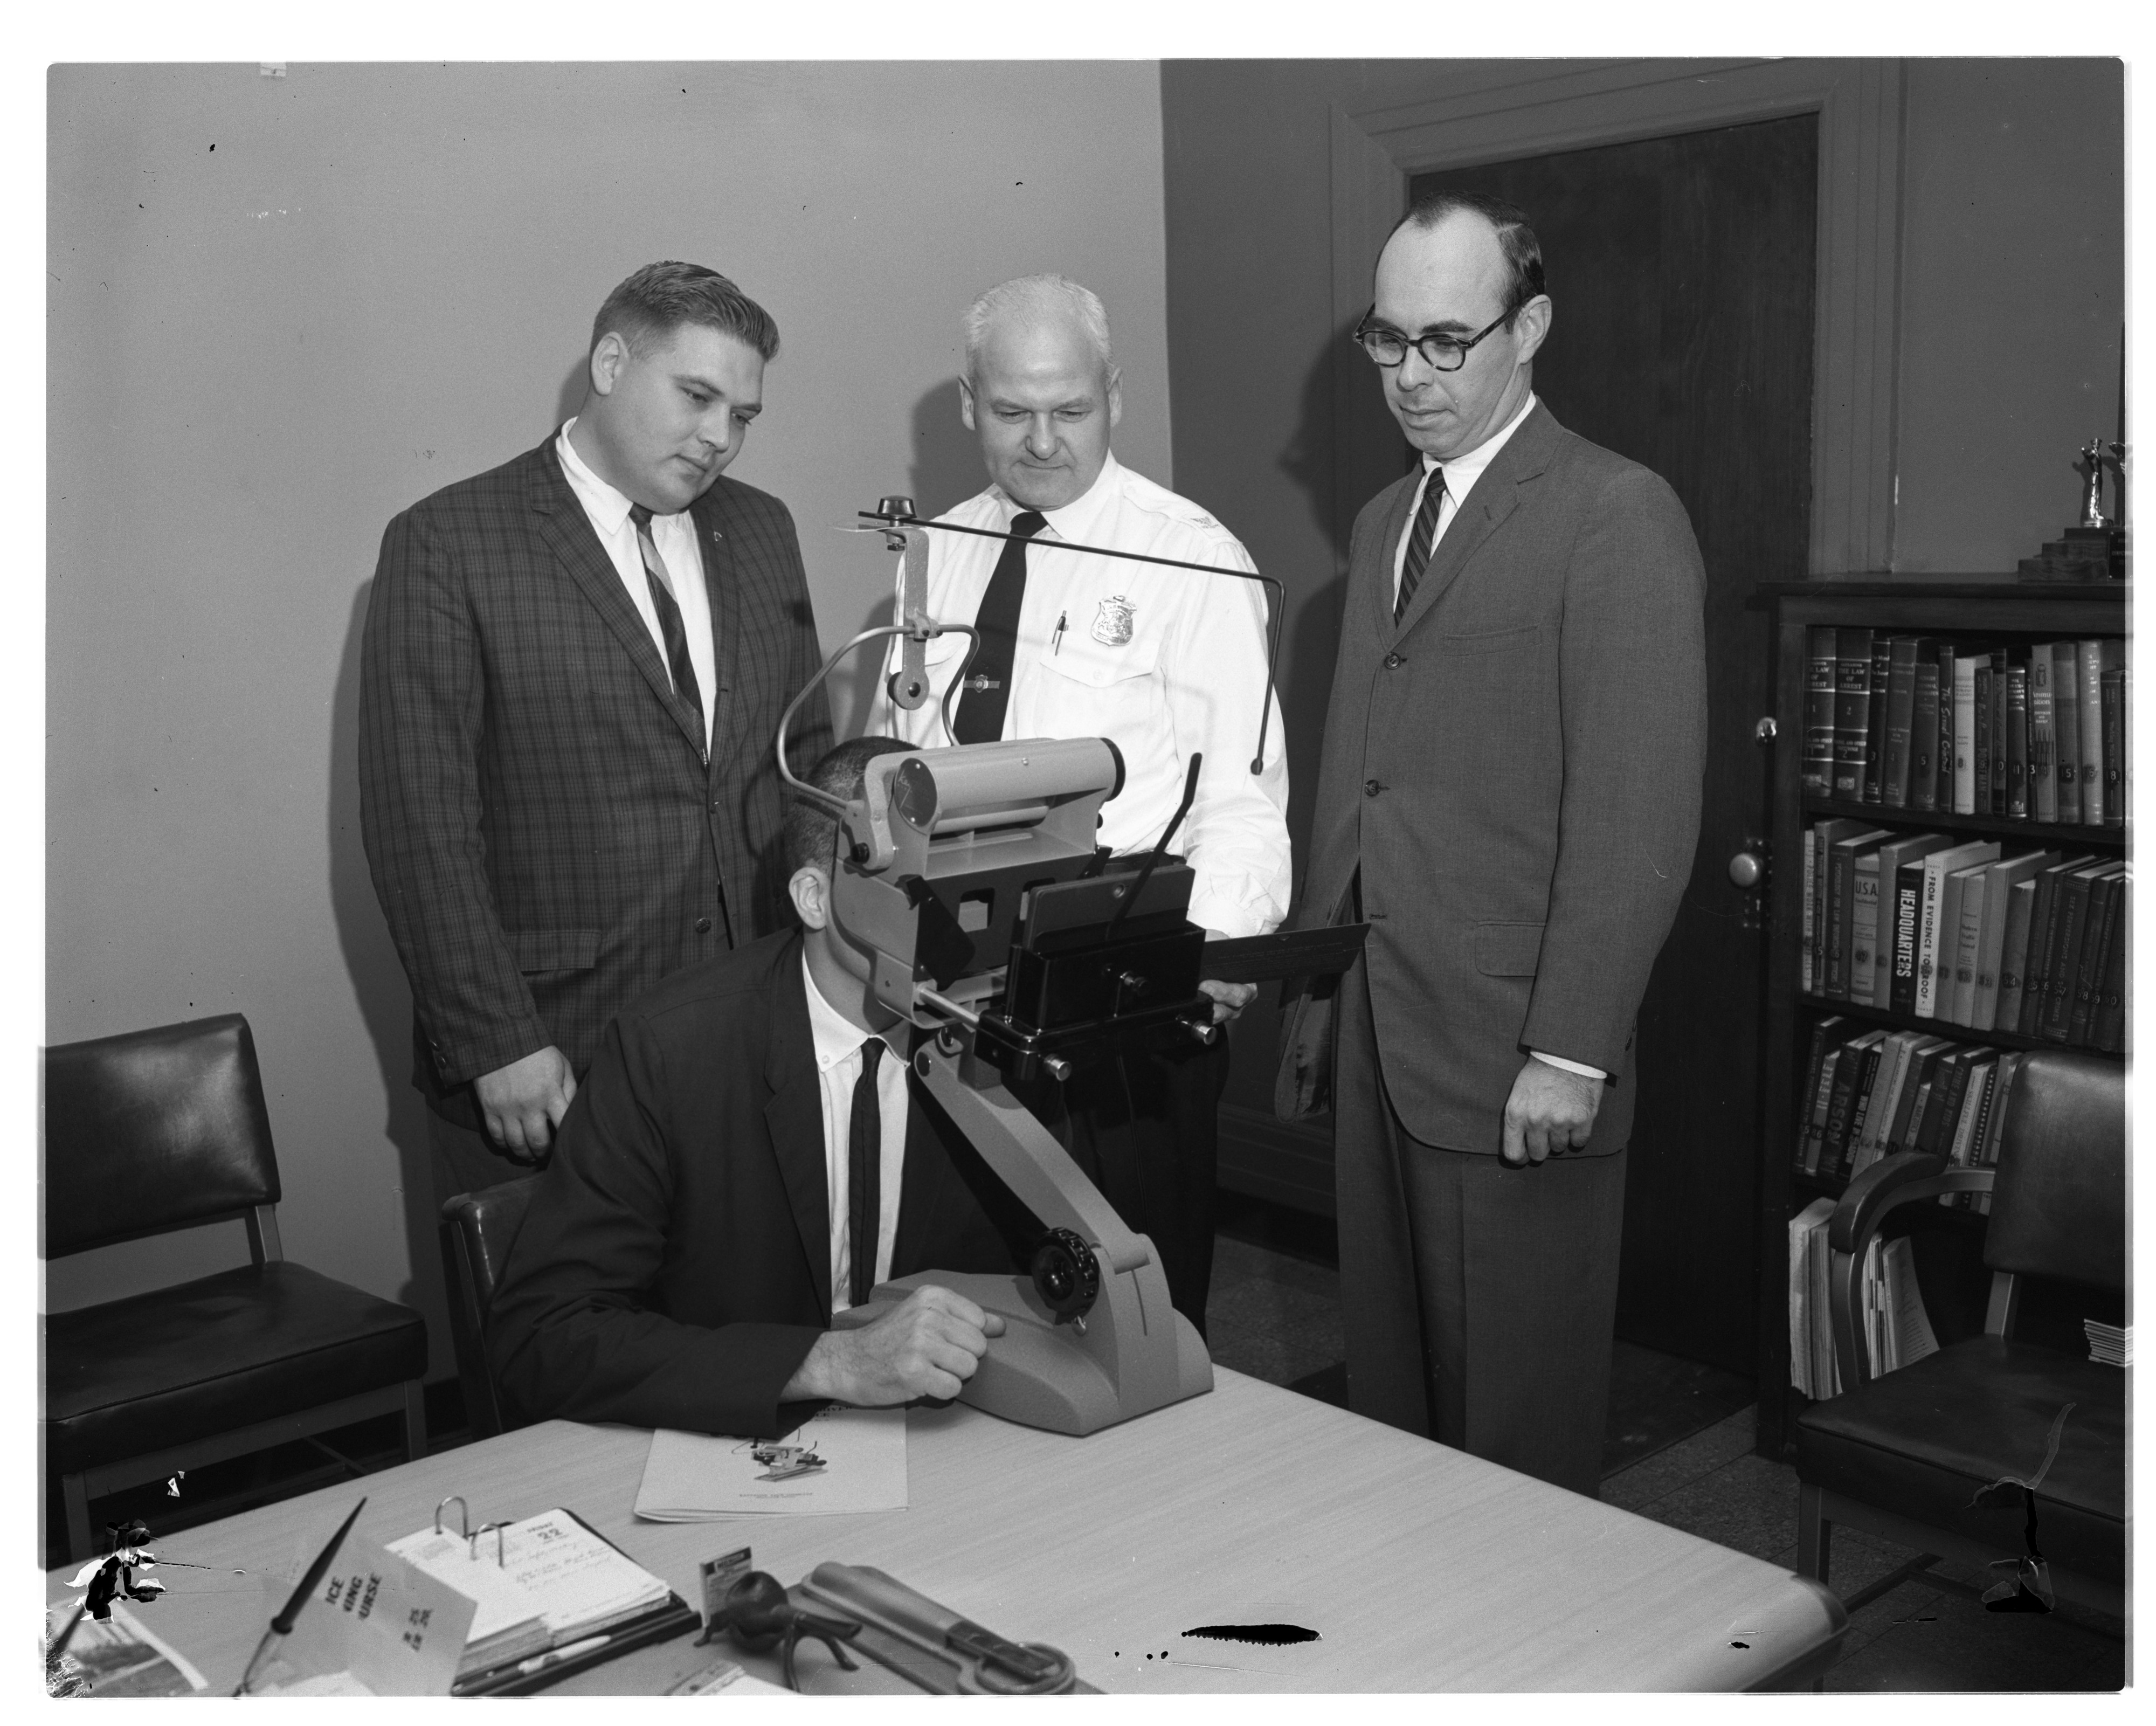 City Officials Check Out New Driver's Exam Machine Donated To City, September 1961 image